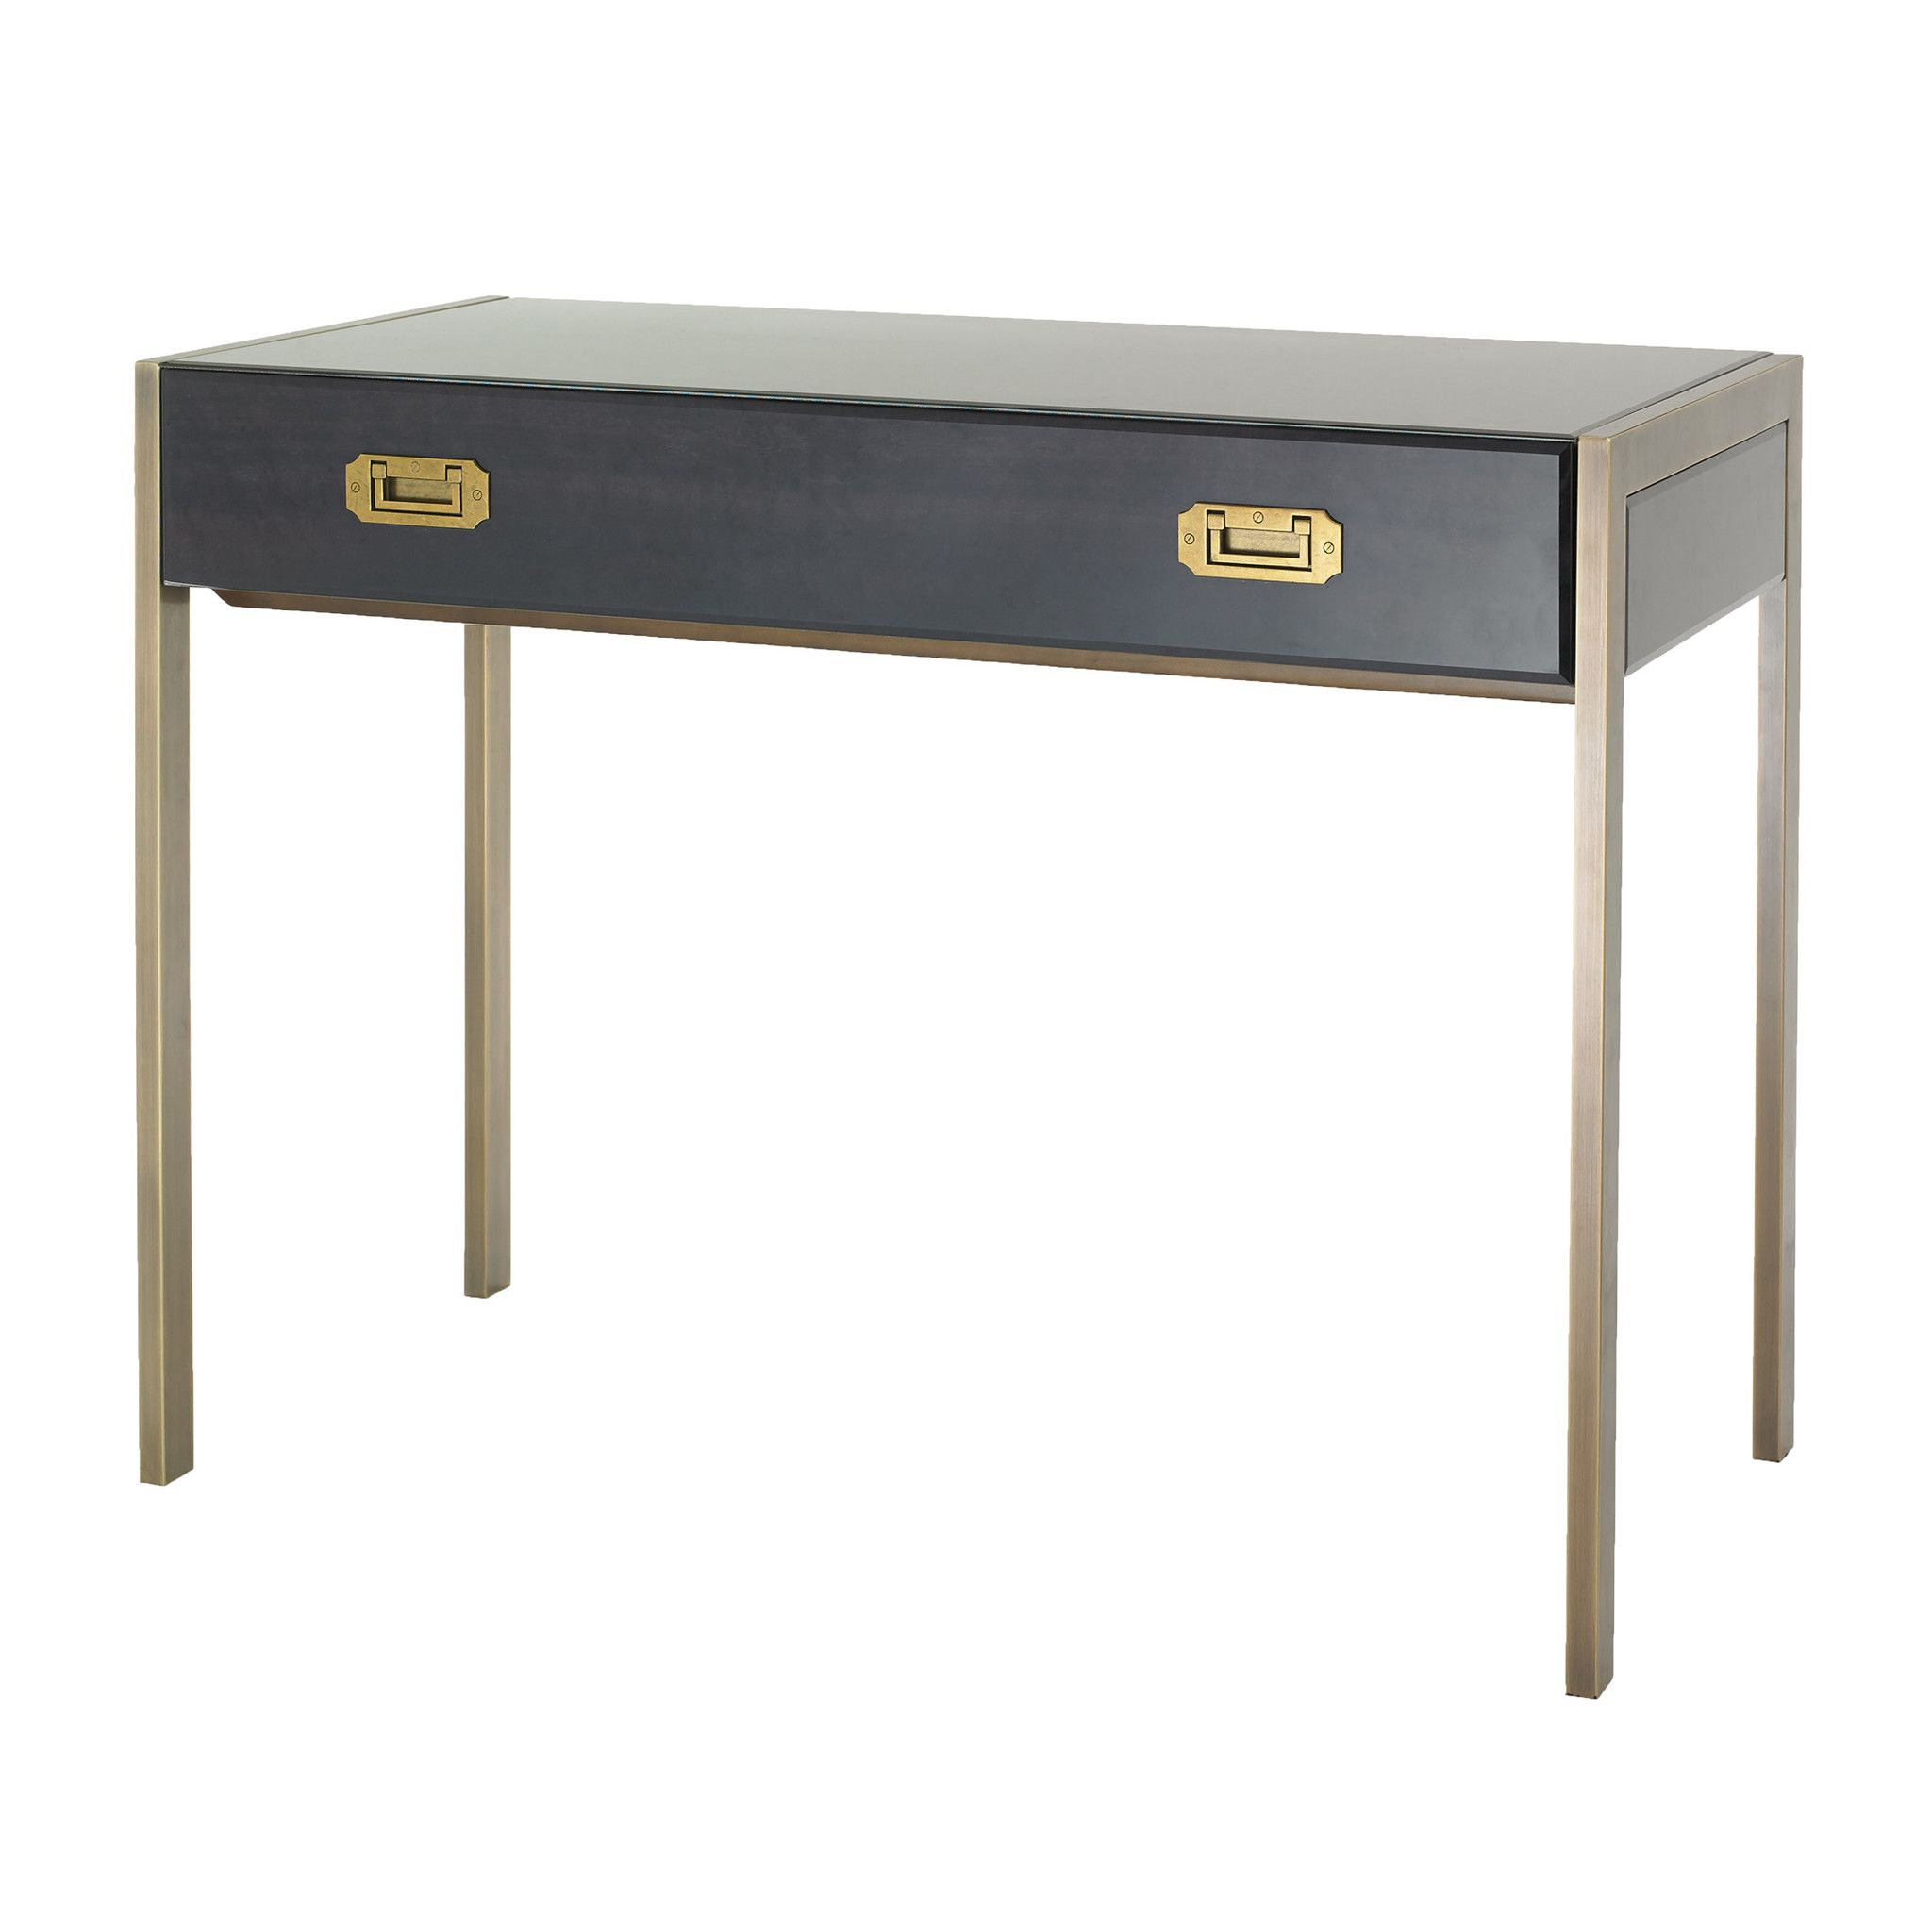 Best Table De Console Ideas Joshkrajcik Us Joshkrajcik Us # Salon De Jardin Ice Brushed